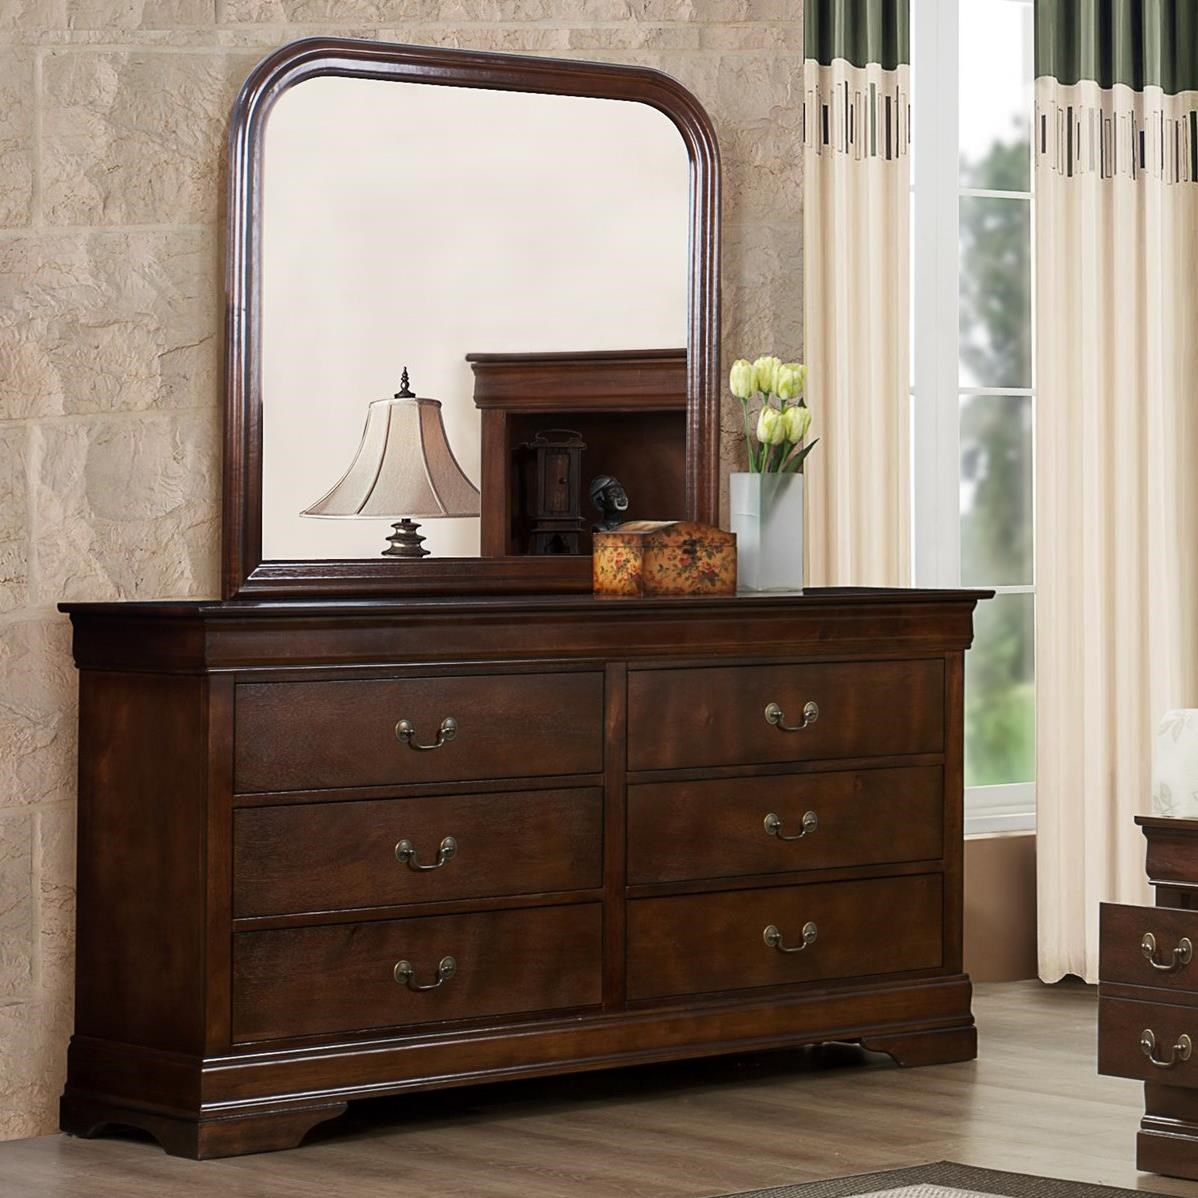 Austin Group Marseille Dresser and Mirror - Item Number: 329-10-CHR+01-CHR